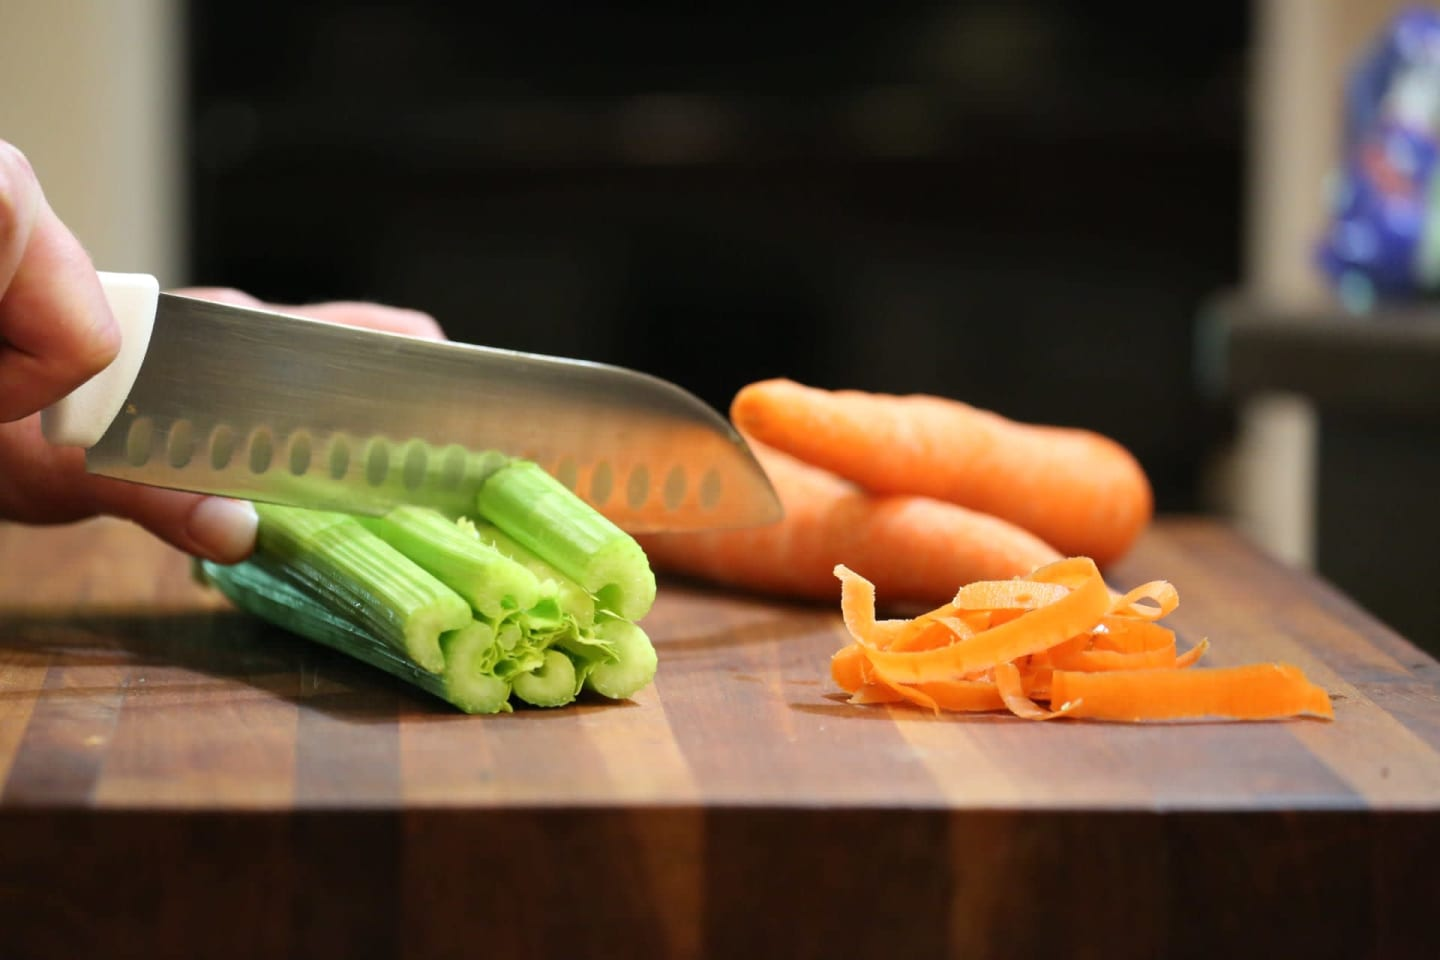 Prepping celery and carrots